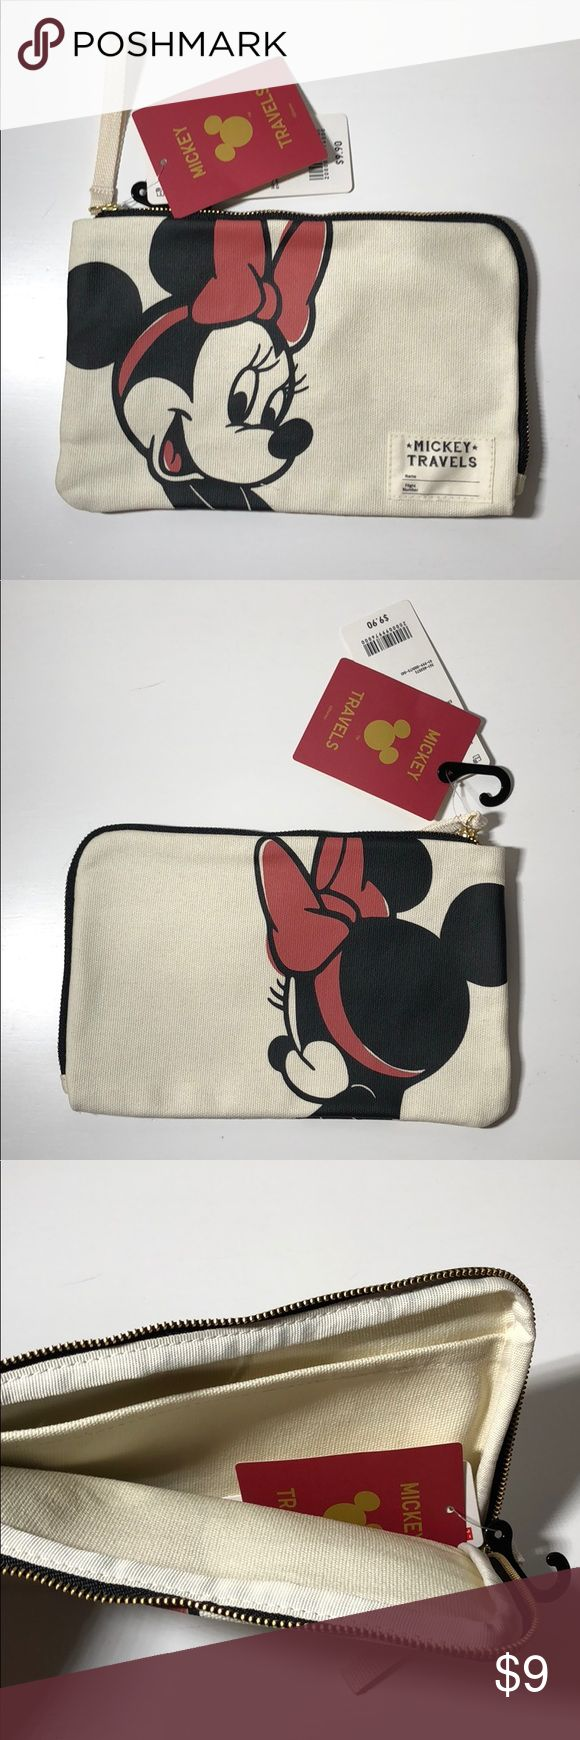 """Minnie """"Mickie Travels"""" Pouch This Minnie """"Mickey Travels"""" bag was purchased at Uniqlo. It is brand new with tag and super cute! It's about 8.5 inches in length and 5.5 inches in width. It also has an inside pocket. Uniqlo Bags Cosmetic Bags & Cases"""